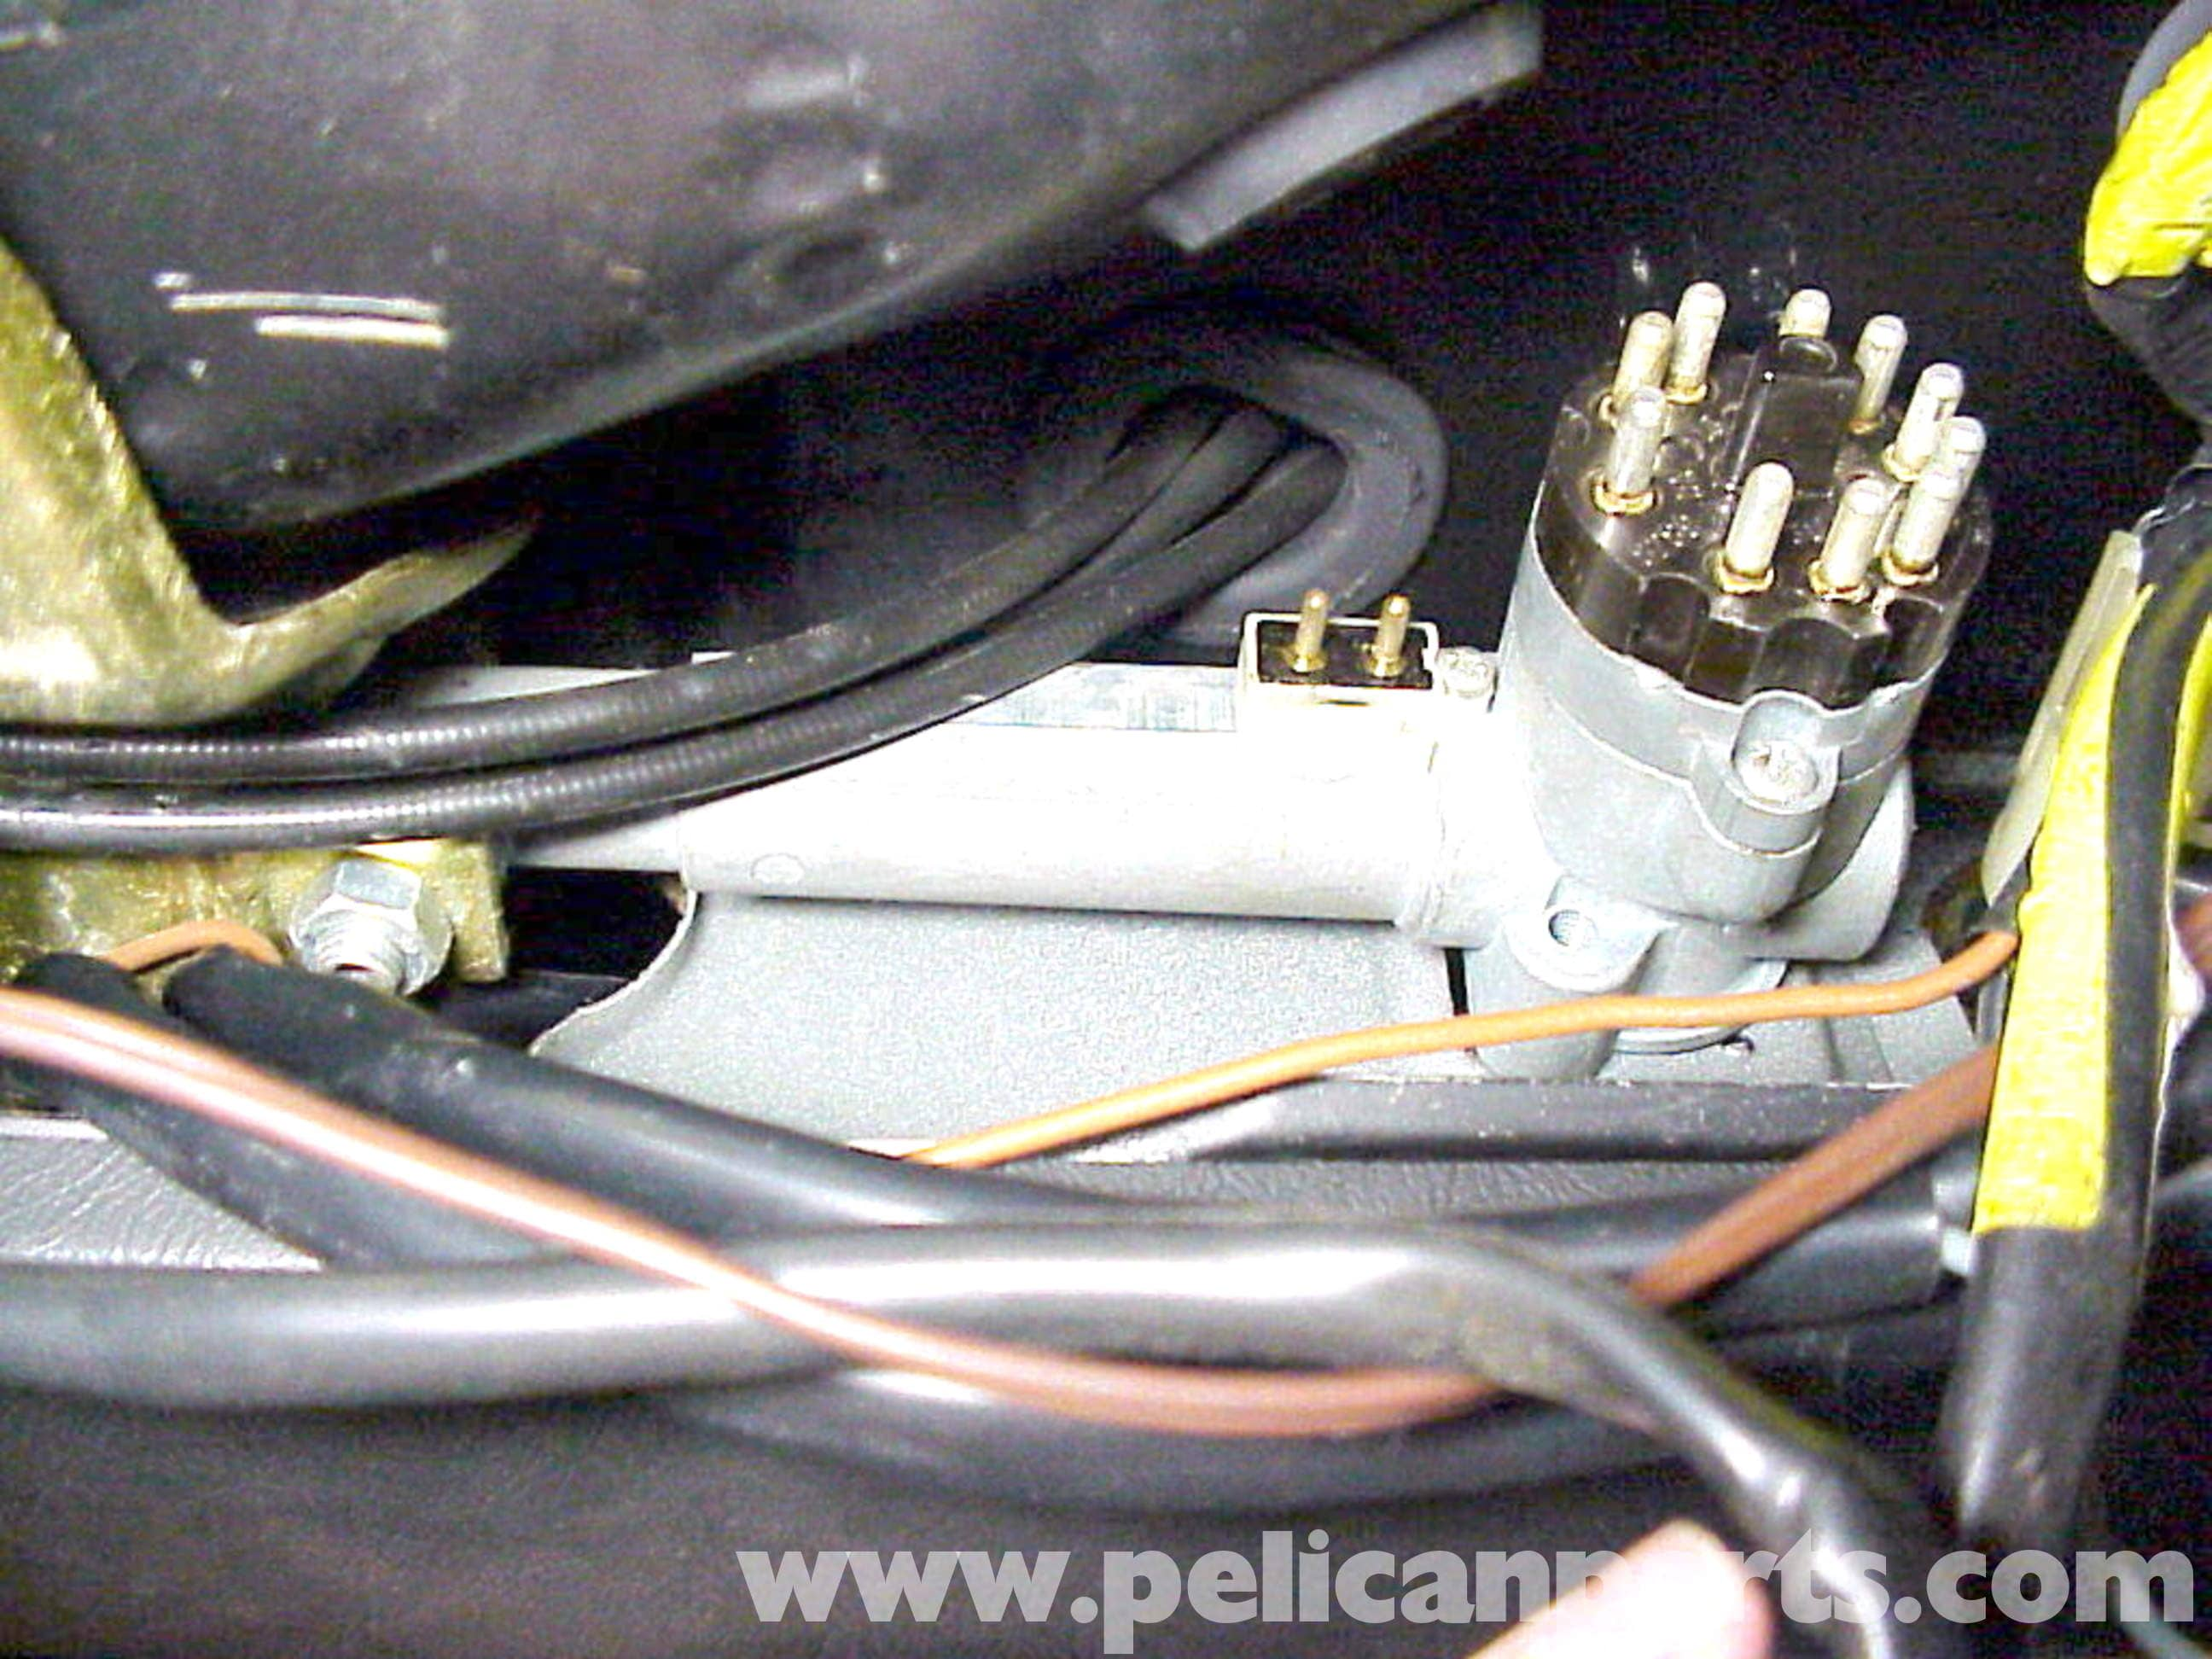 Pic2 porsche 911 ignition switch replacement 911 (1965 89) 930 porsche 911 wiring harness replacement at soozxer.org